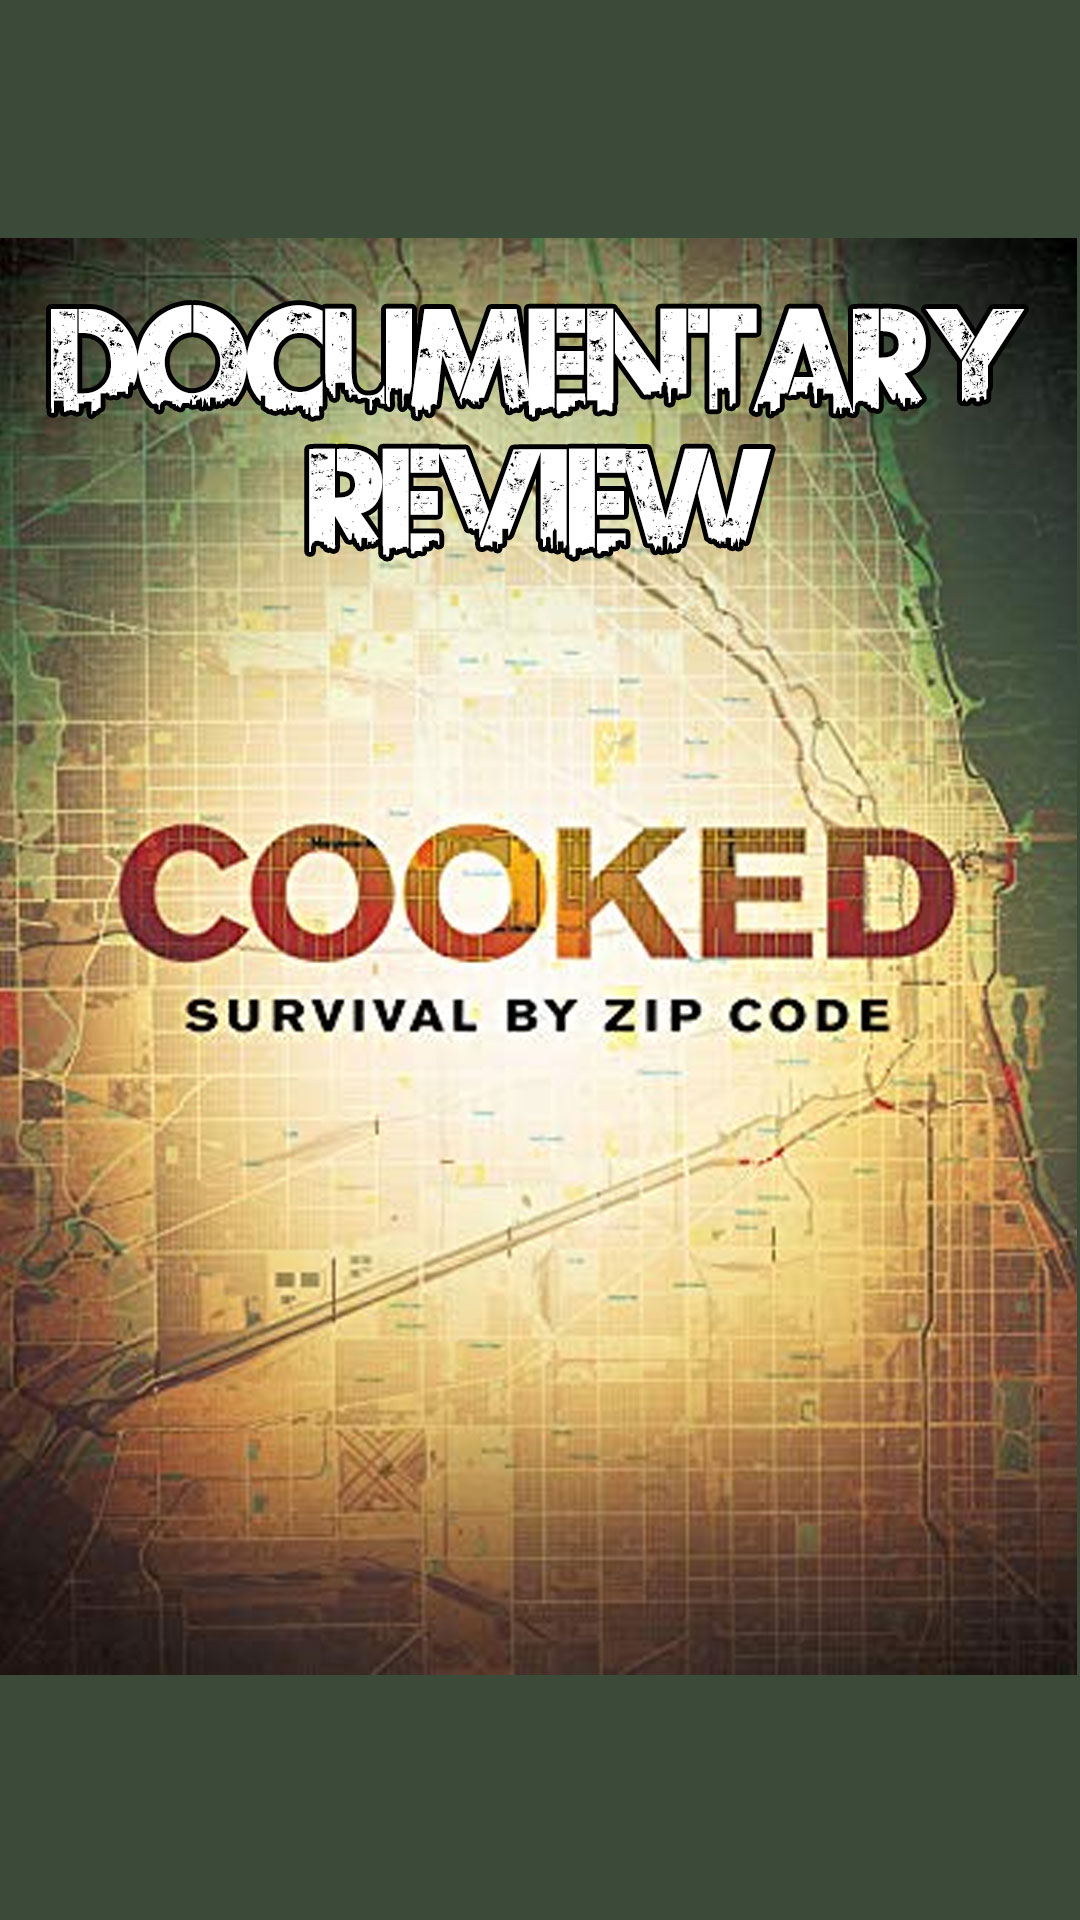 Cooked: Survival by Zip Code Film Review